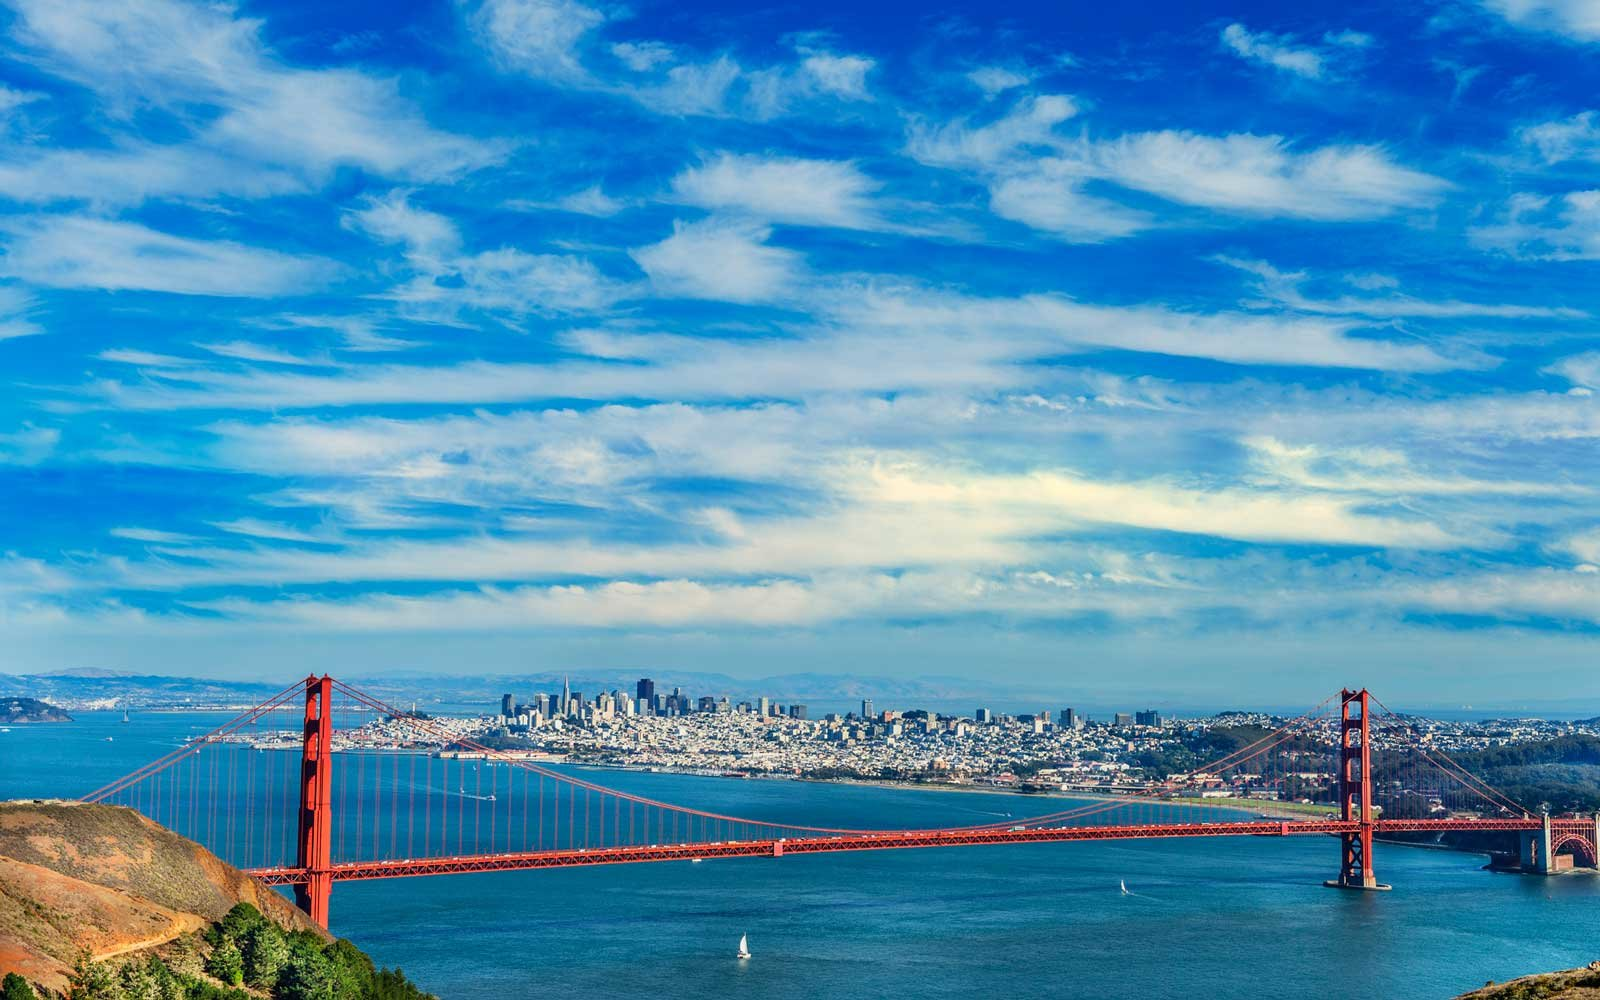 Golden Gate Bridge with San Francisco skyline in background